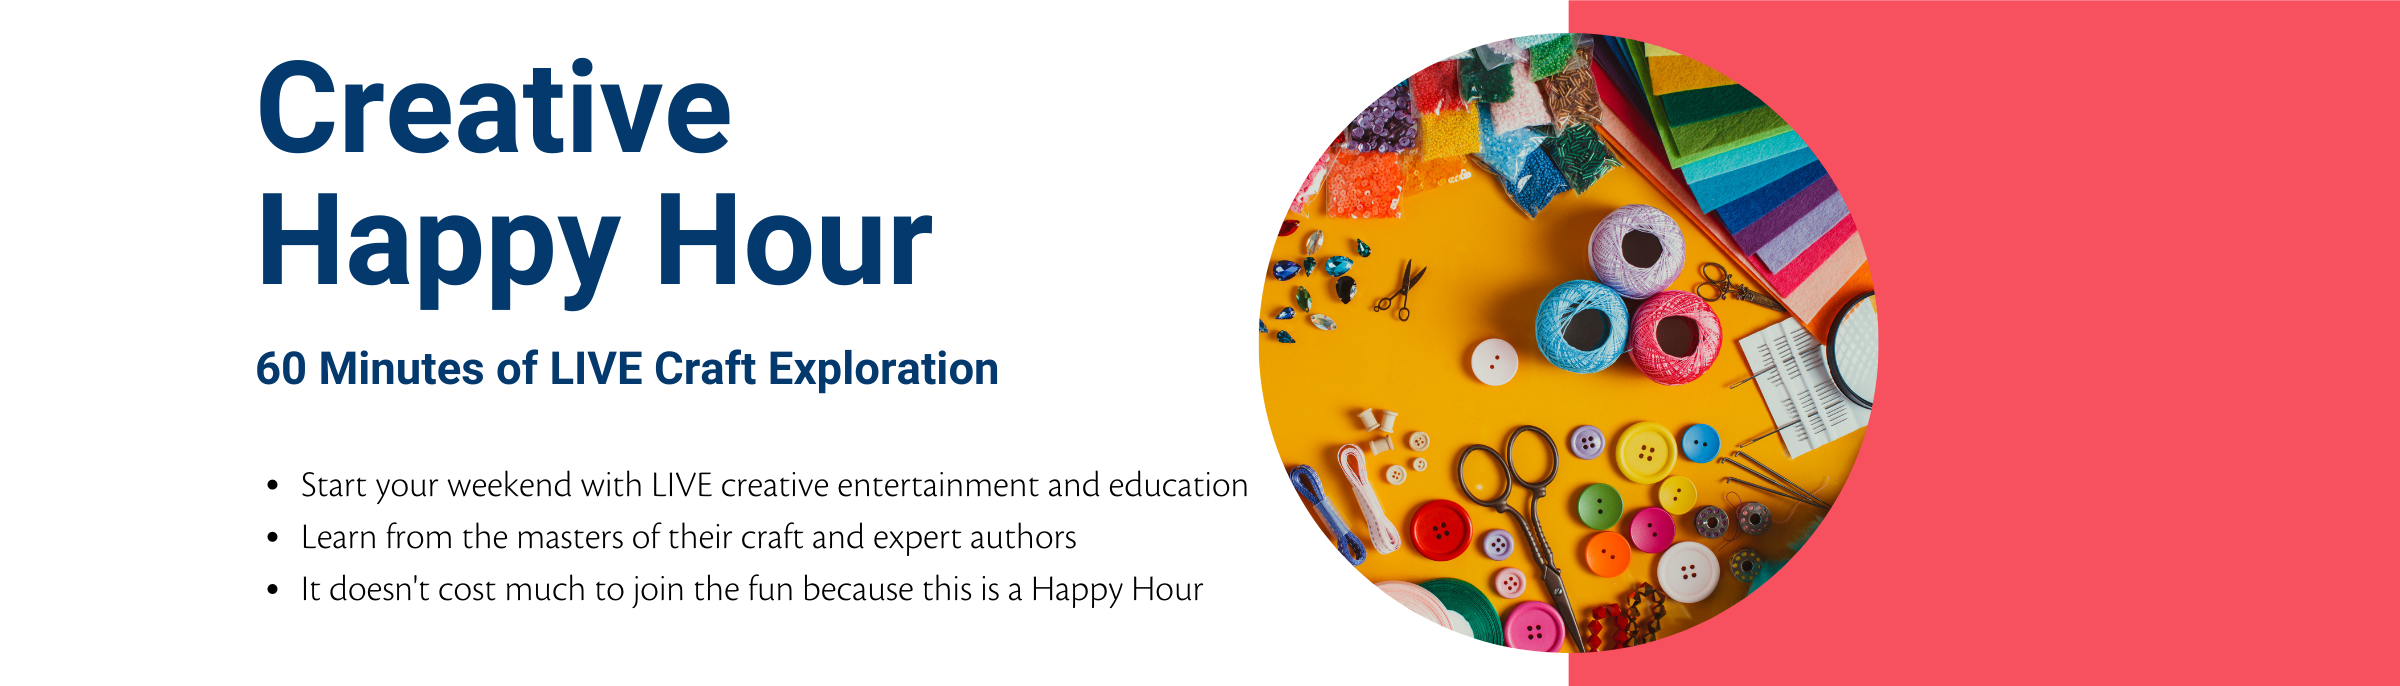 Creative Happy Hour 60 Minutes of LIVE Craft Exploration